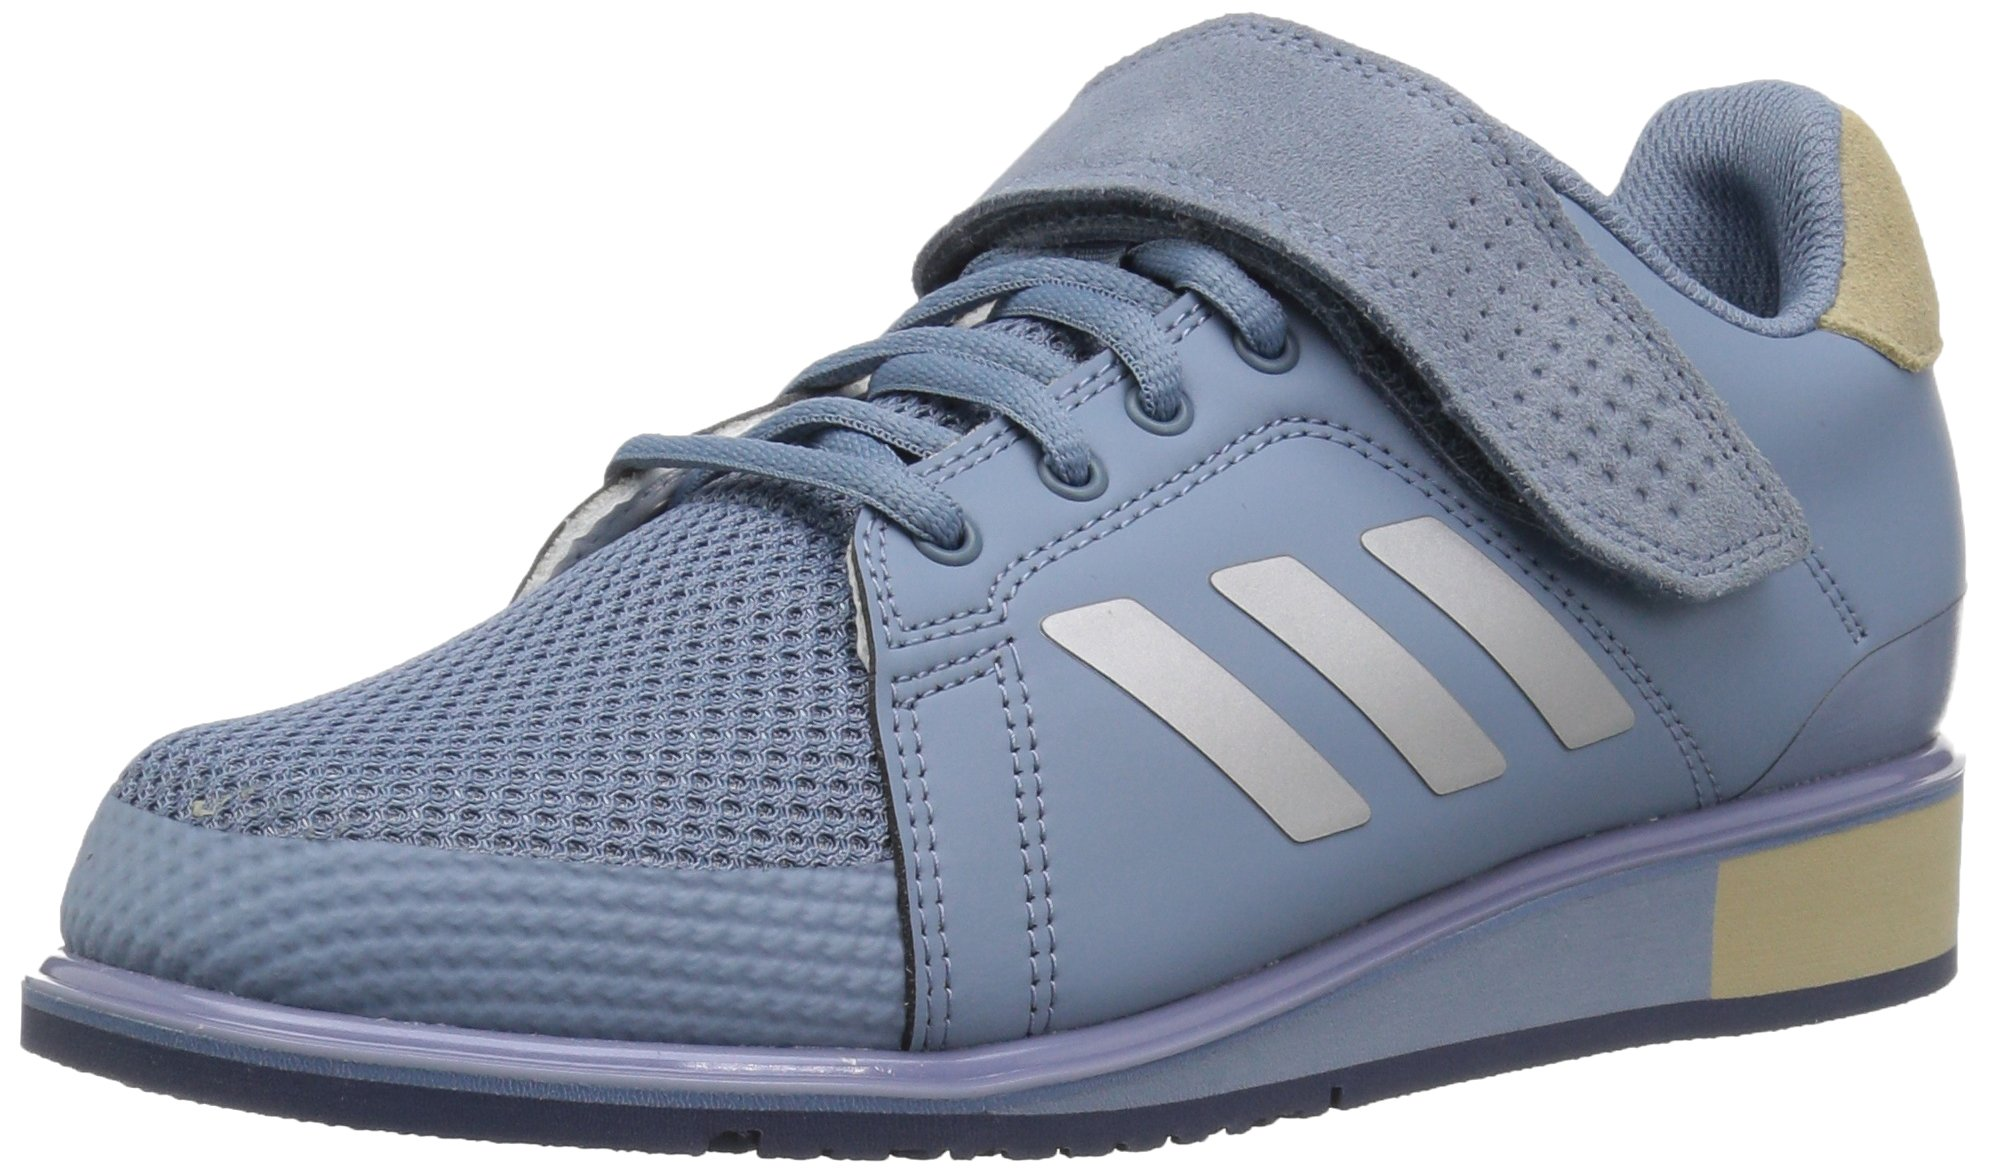 adidas Men's Power Perfect III. Cross Trainer Grey/Metallic Silver/raw Gold, 4 M US